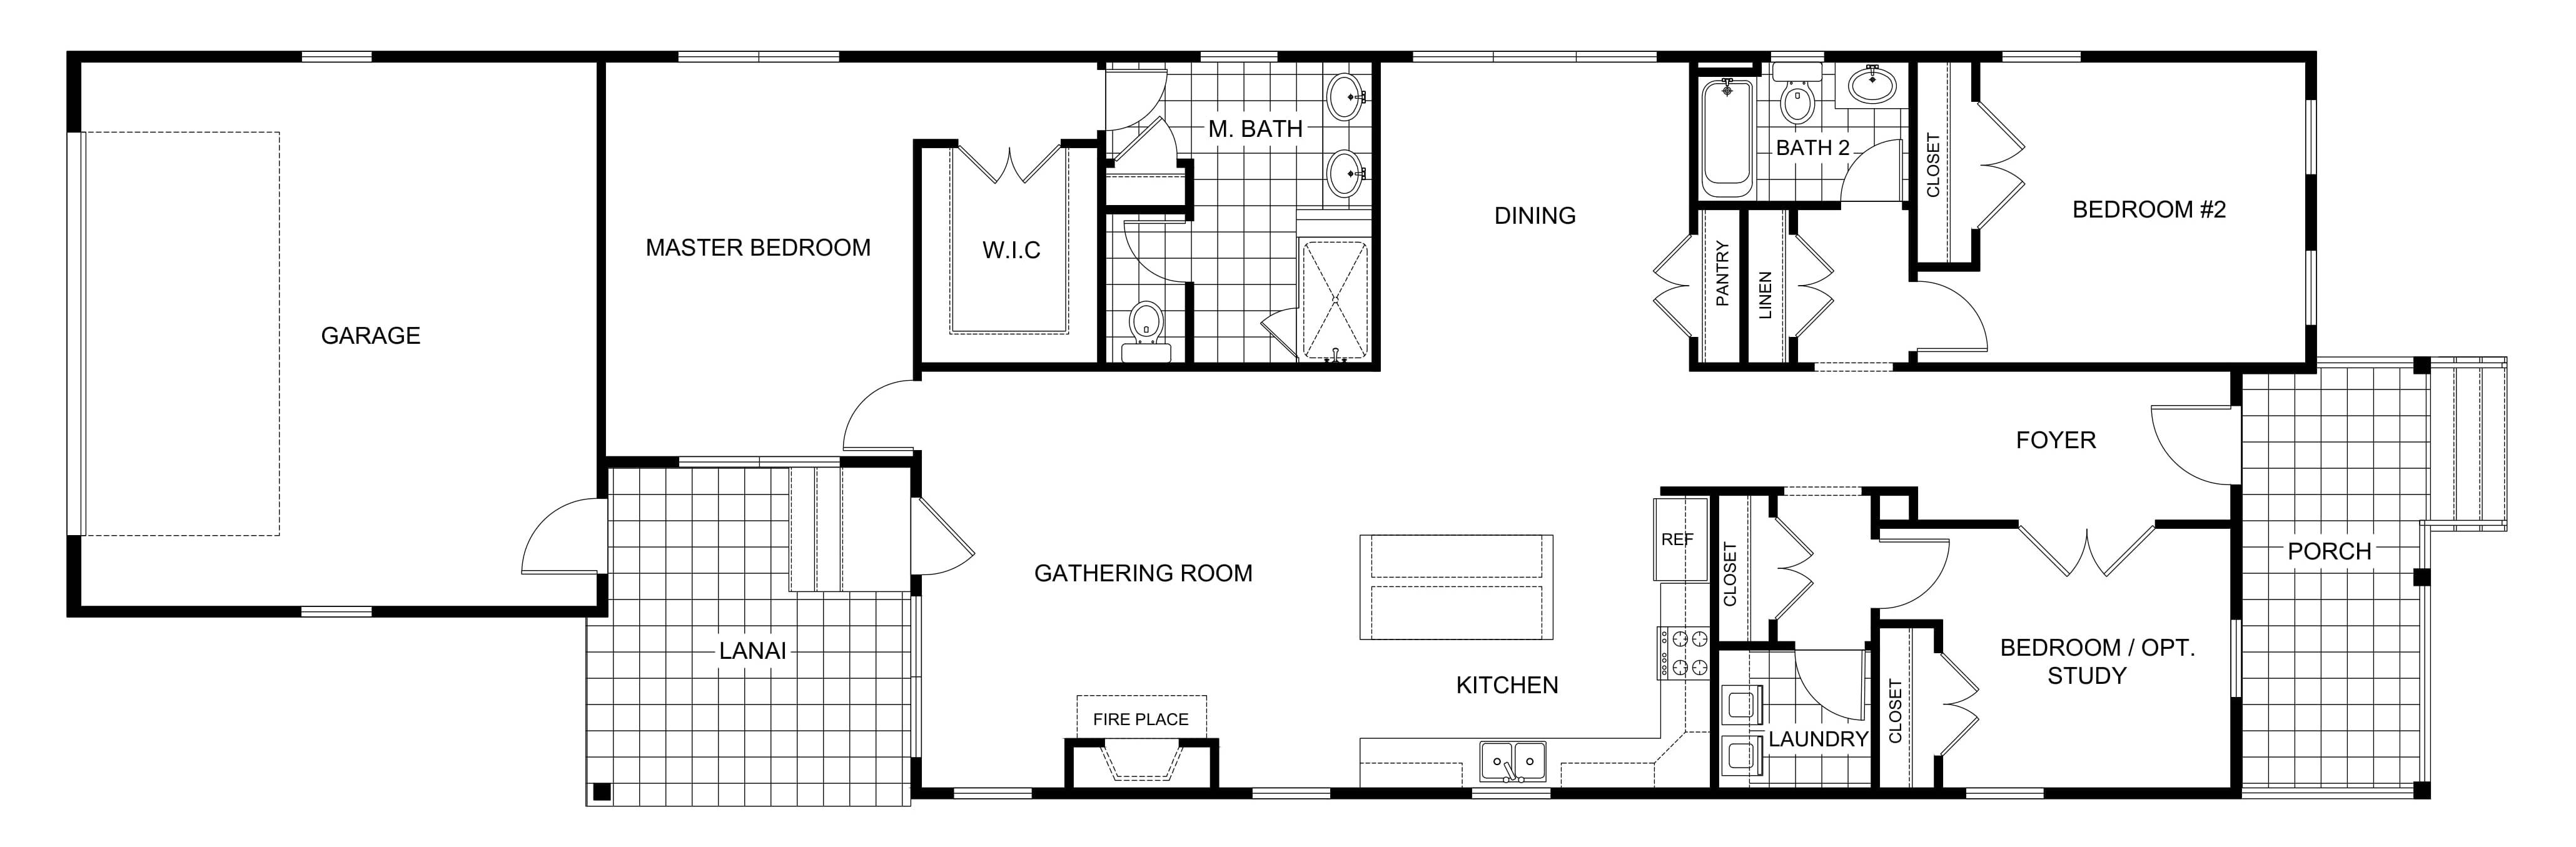 2D Floor Plan Drawings Sample